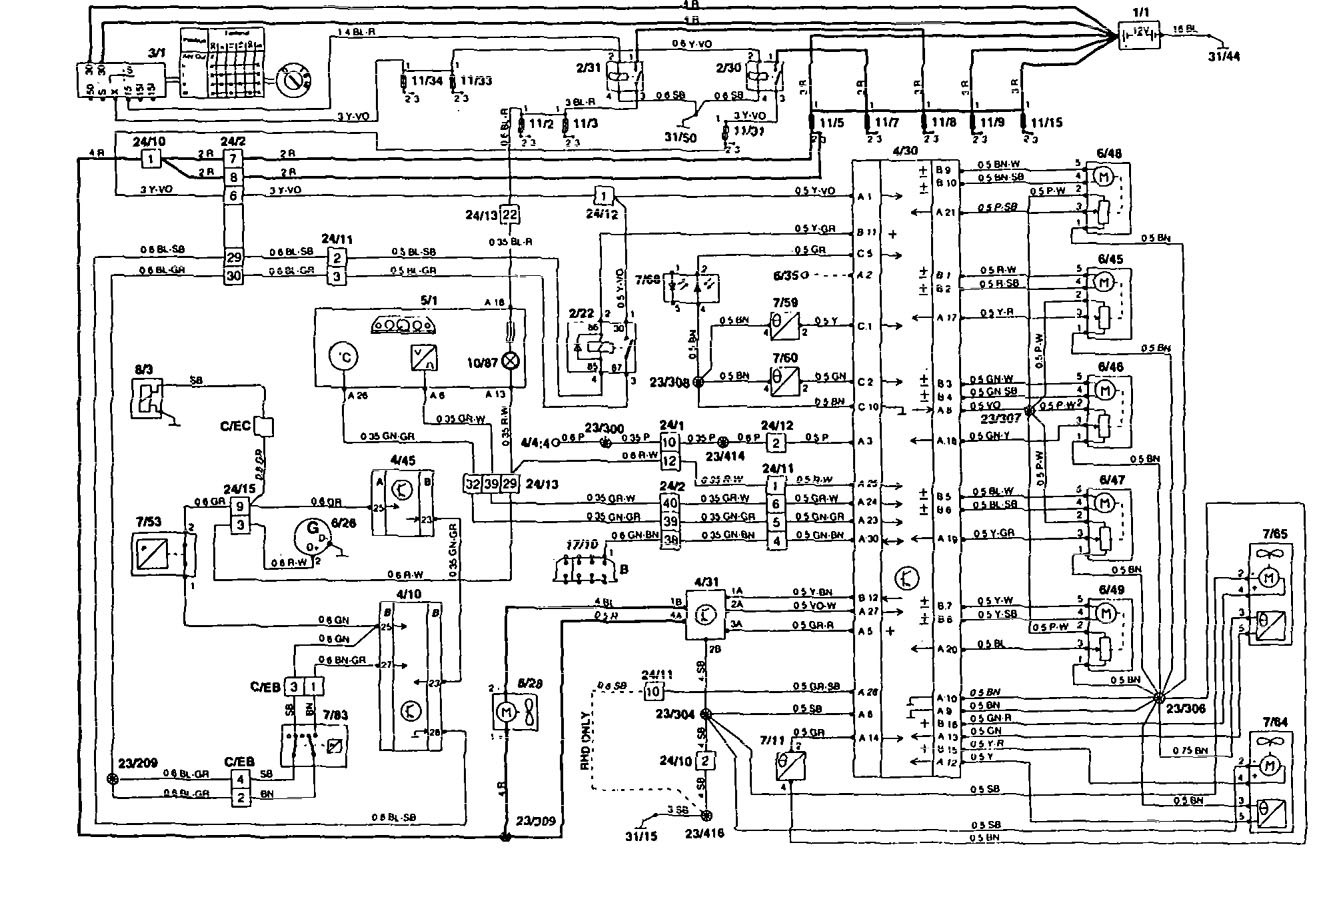 Volvo 850 Car Stereo Wiring Diagram : Volvo  wiring diagrams hvac controls